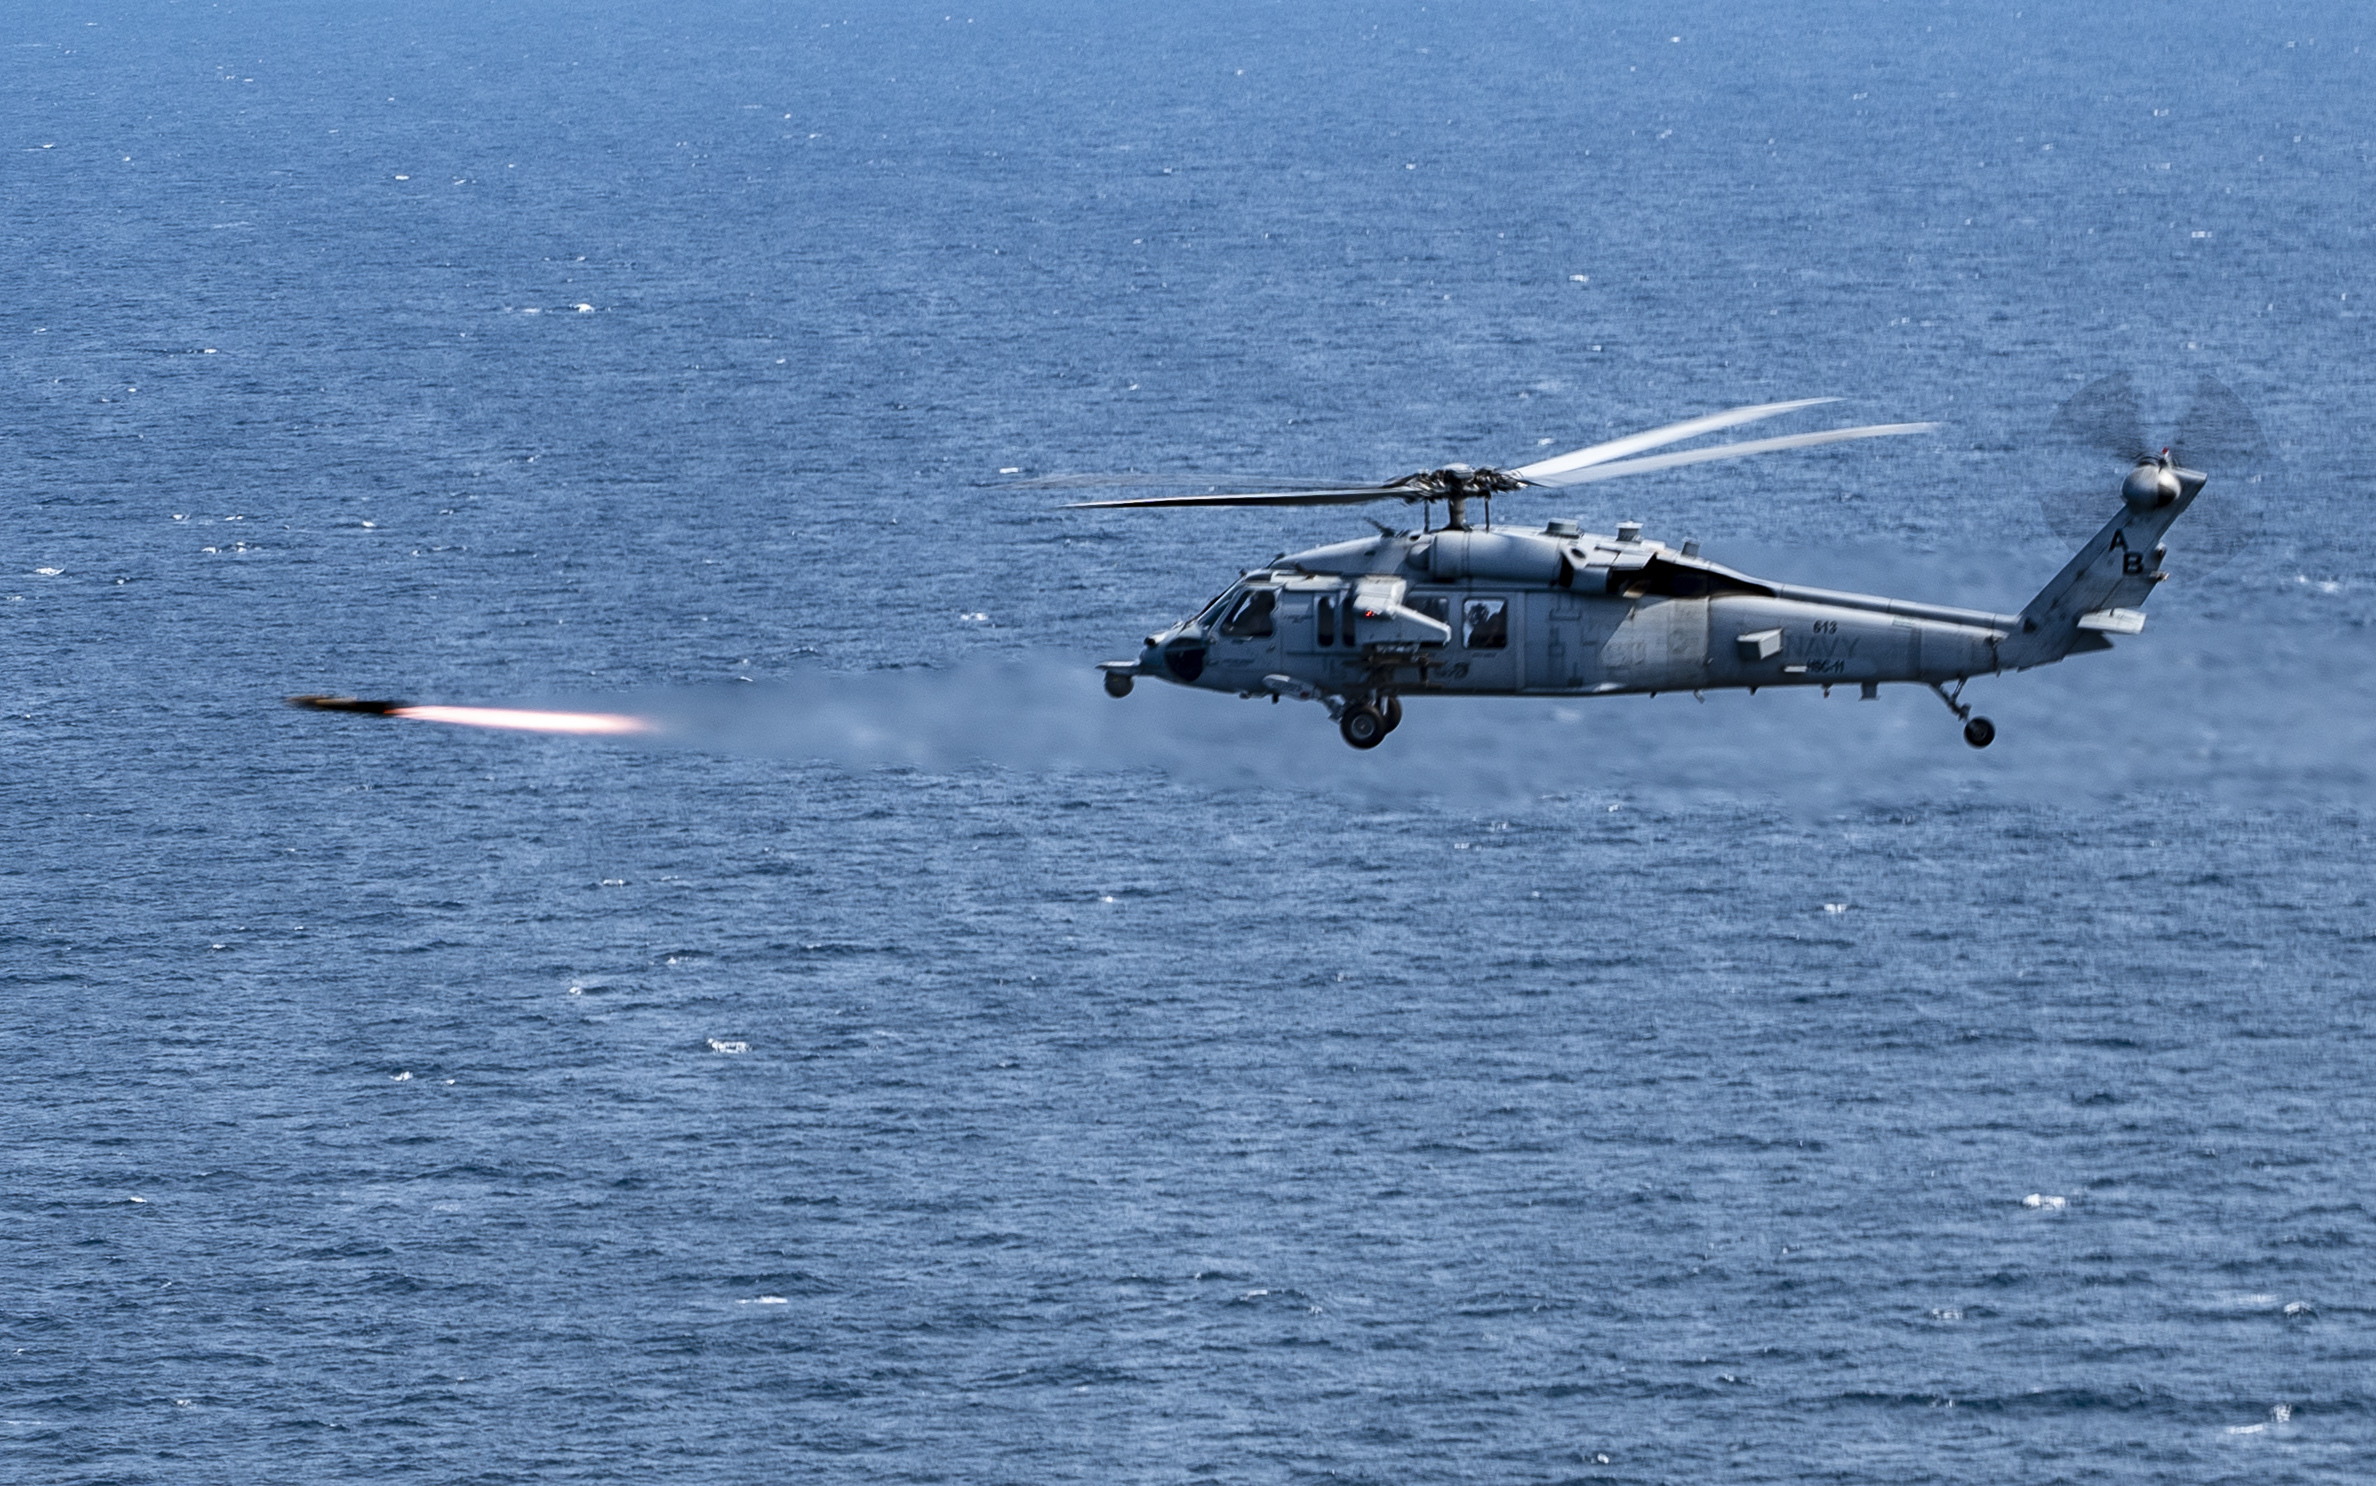 An MH-60S Seahawk fires an AGM-114 Hellfire missile during exercise Savage Ice. The Joint Air-to-Ground Missile will ultimately replace the Hellfire missile used across the services. (MC3 Trey Hutcheson/U.S. Navy)